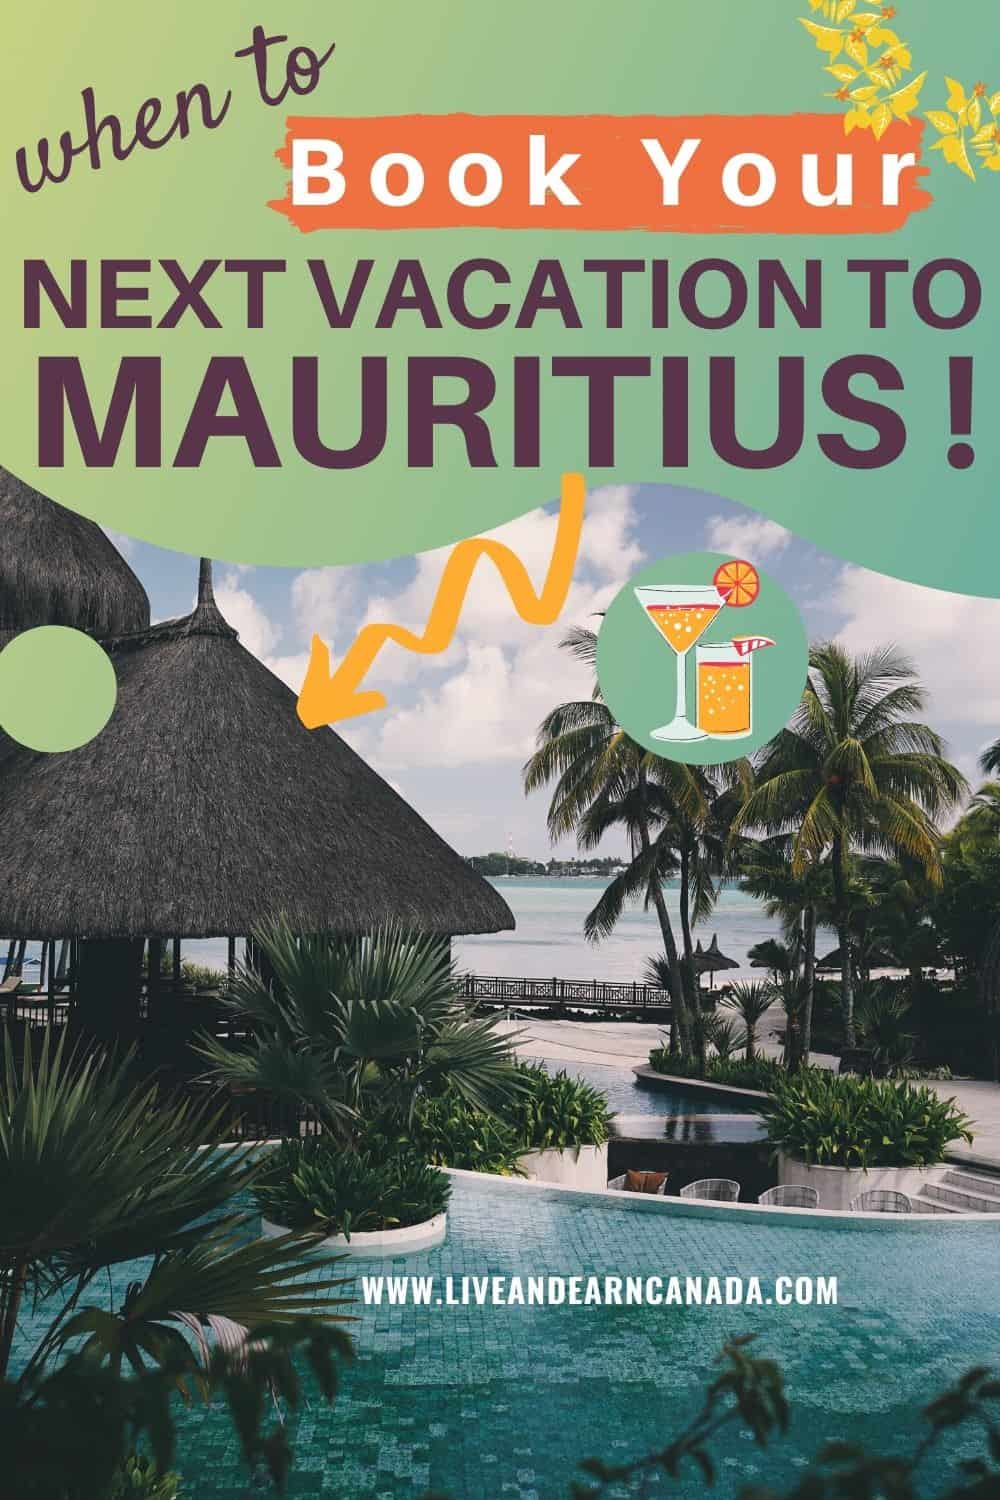 If you are thinking of traveling to Mauritius and you want the best possible time to visit, we have a list of the perfect time. Mauritius is a beautiful island near Africa. With plenty of amazing things to do in Mauritius, you will have a great time #visitmauritius #Mauritius #TriptoMauritius #beachlife